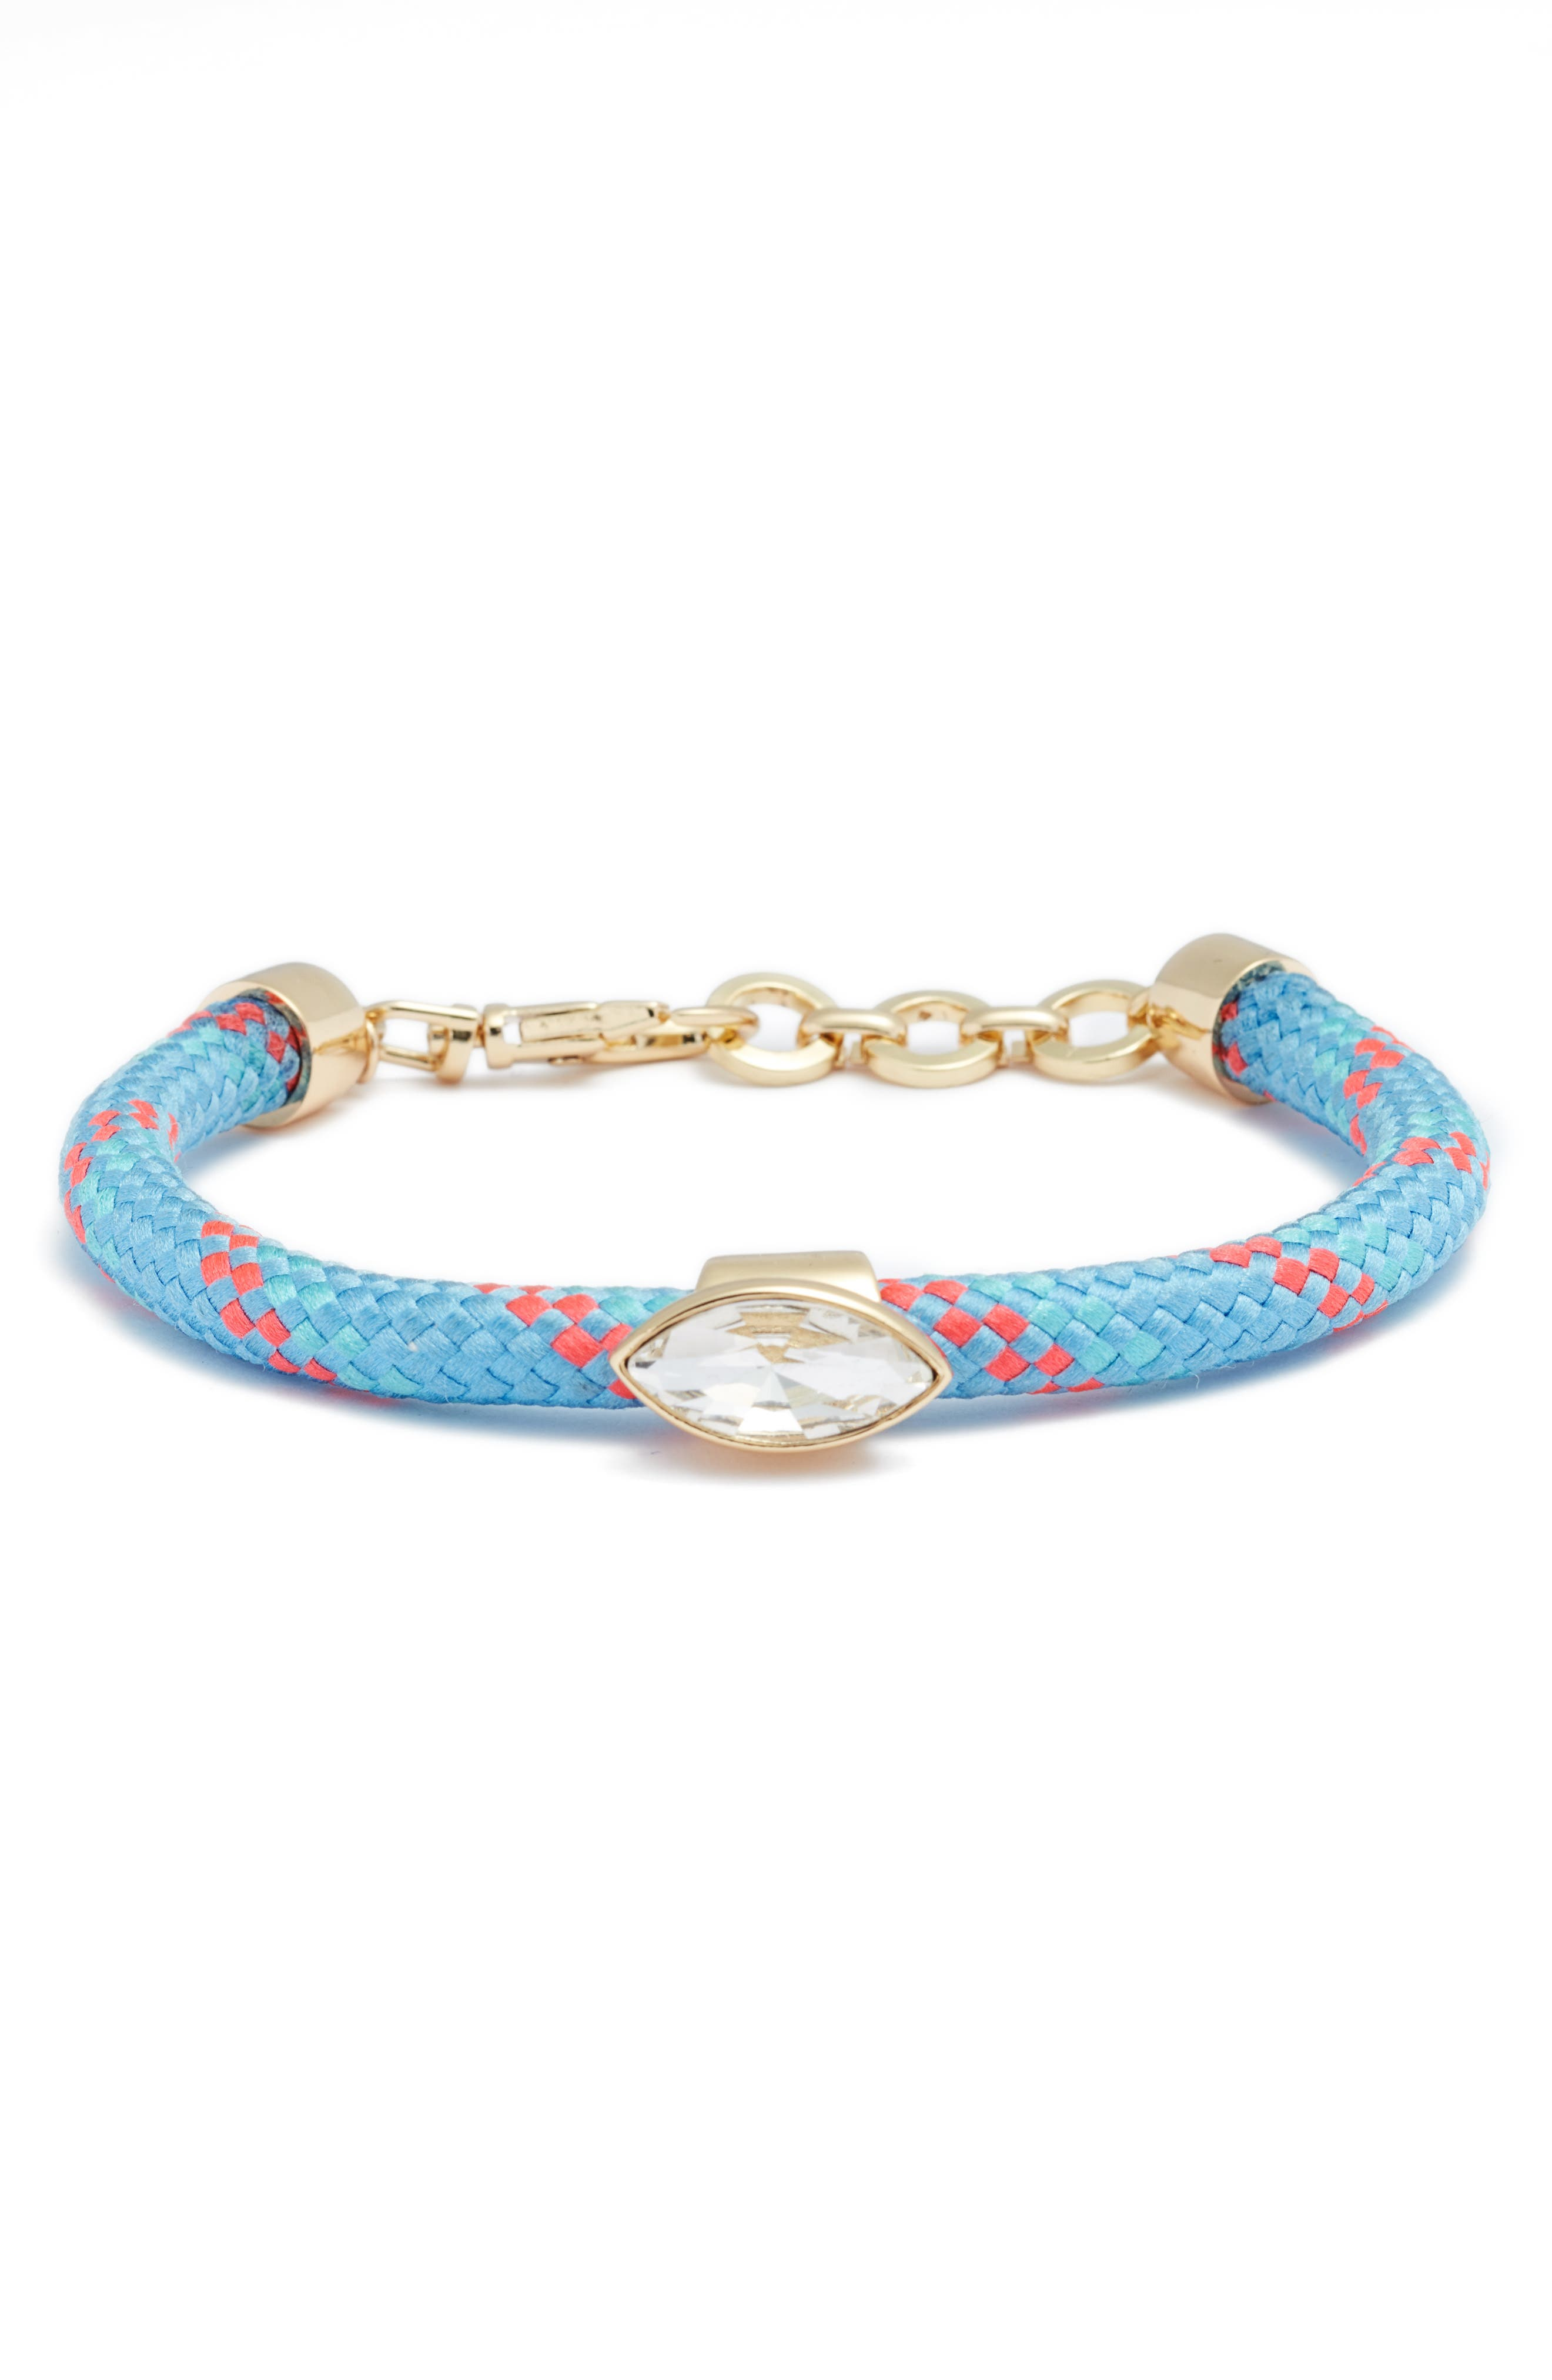 Climbing Rope Bracelet,                         Main,                         color, Turquoise / Gold